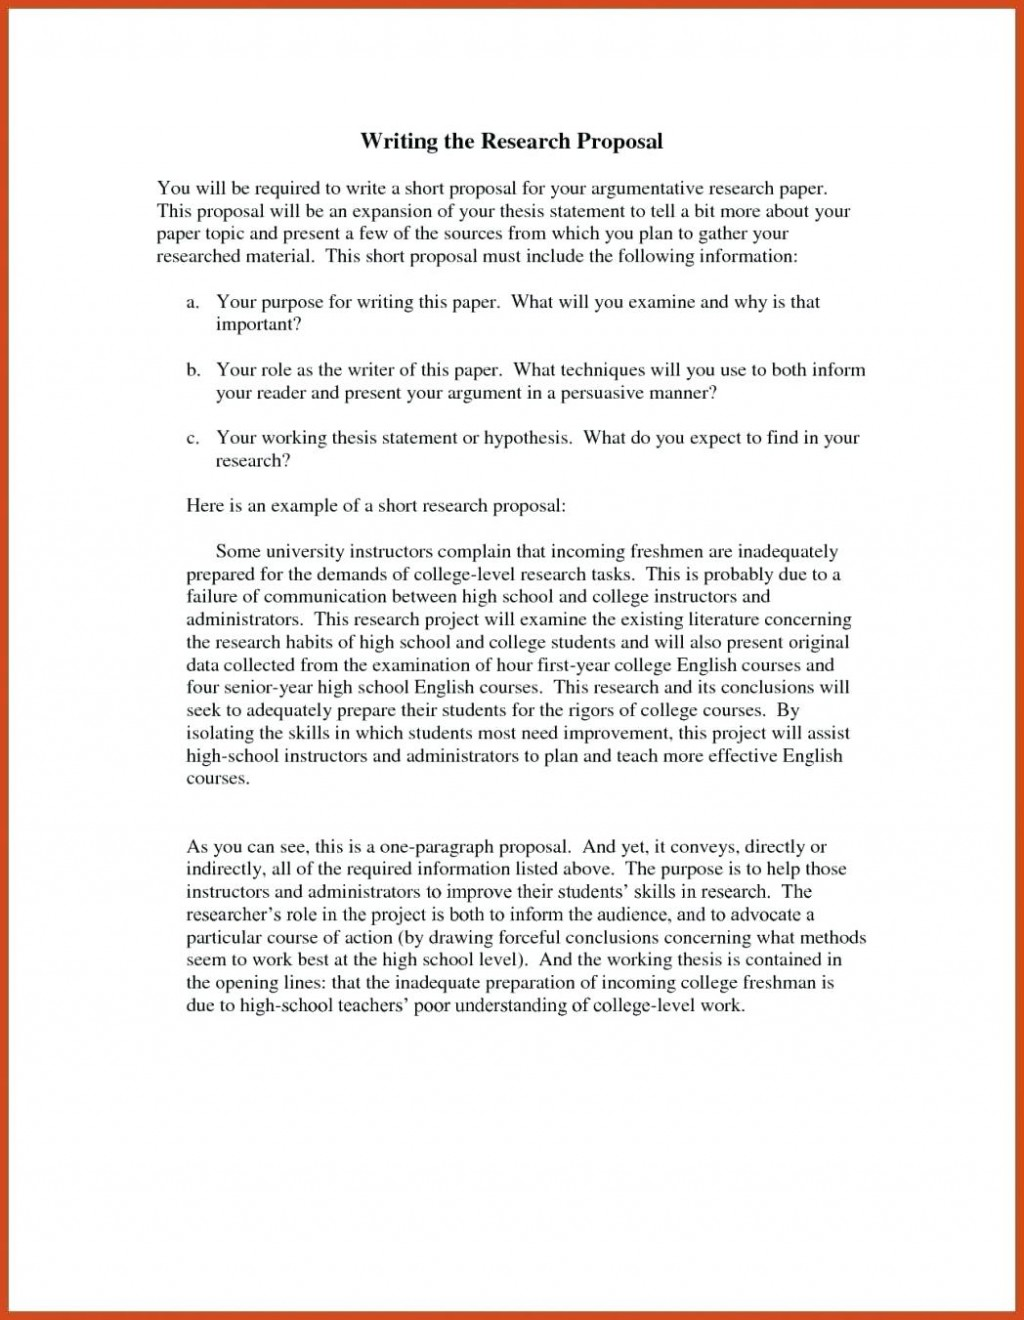 025 Sop Latex Template Research Plan Example Cover Letters Travel Agent An Of Paper In Format Proposal Design Onlines To Read Remarkable Essays Online Free Best Large